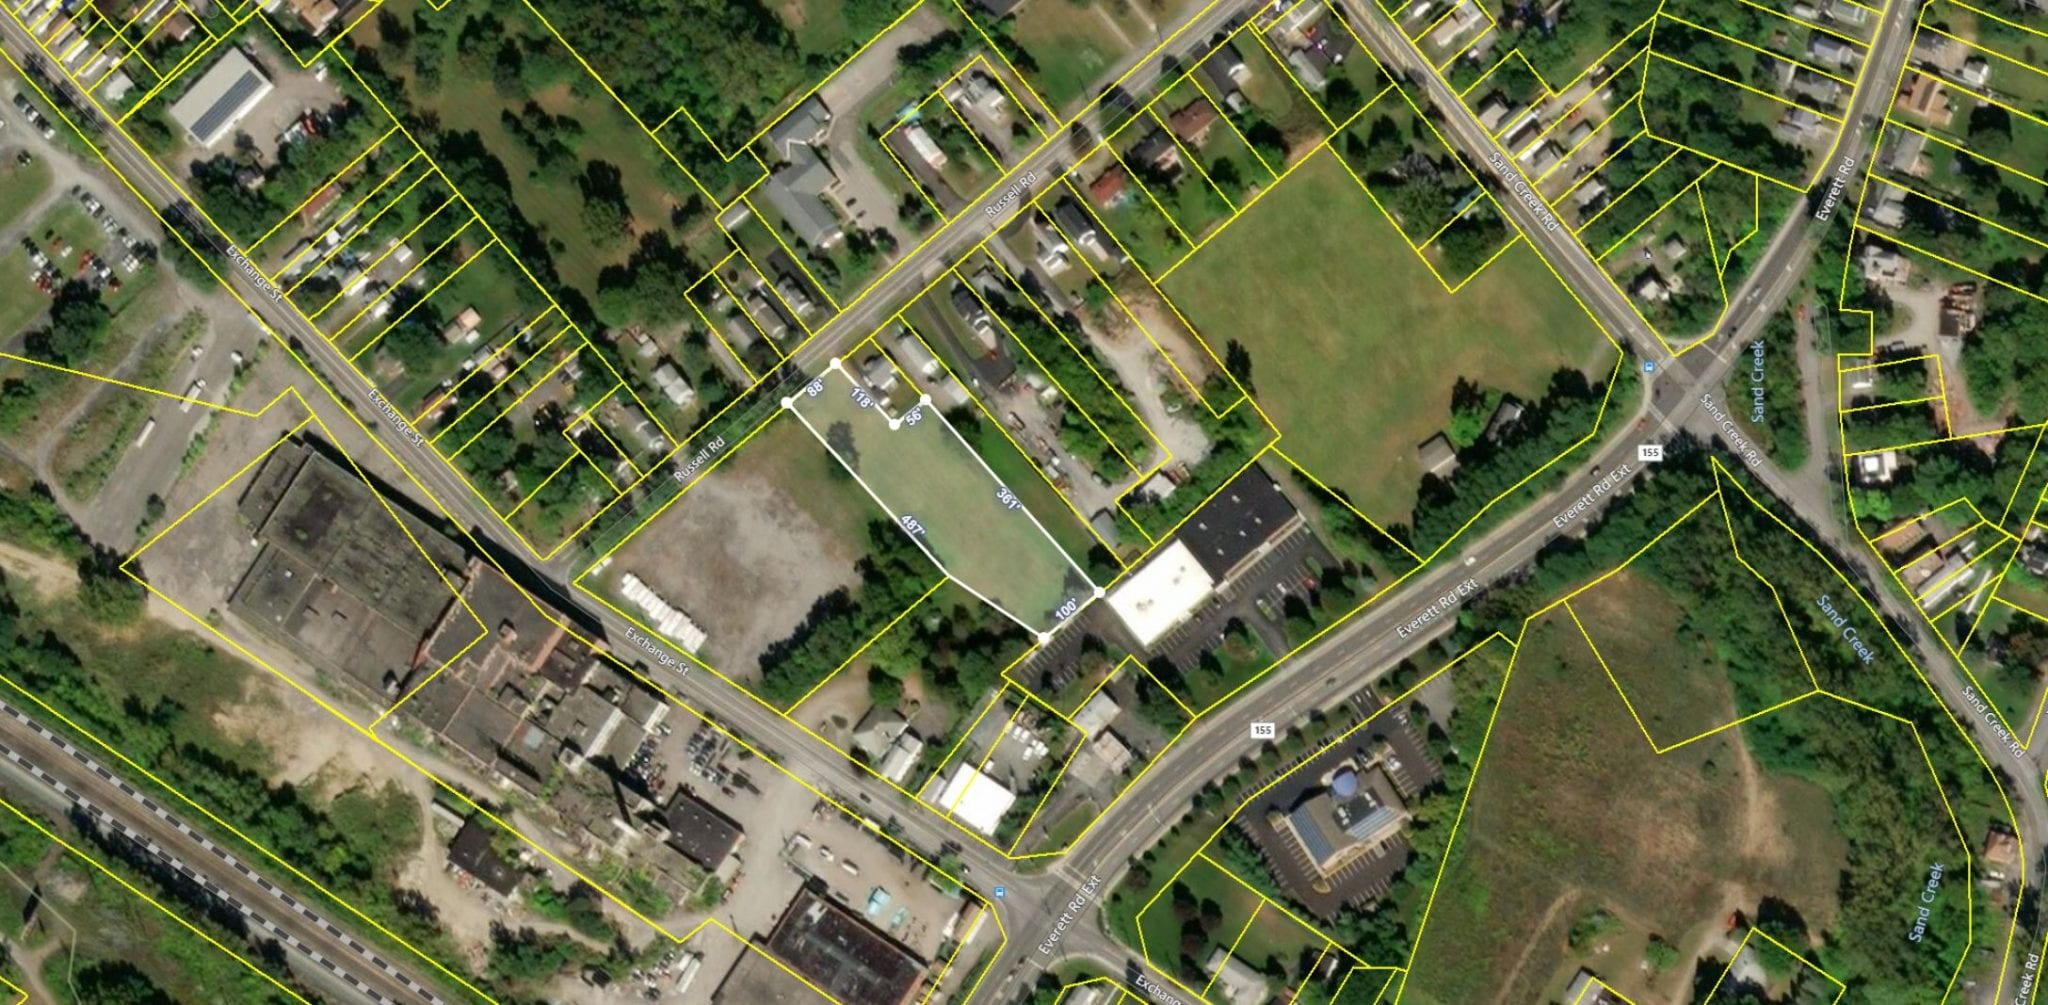 Aerial View of 19 Russell Rd, Colonie NY 12205